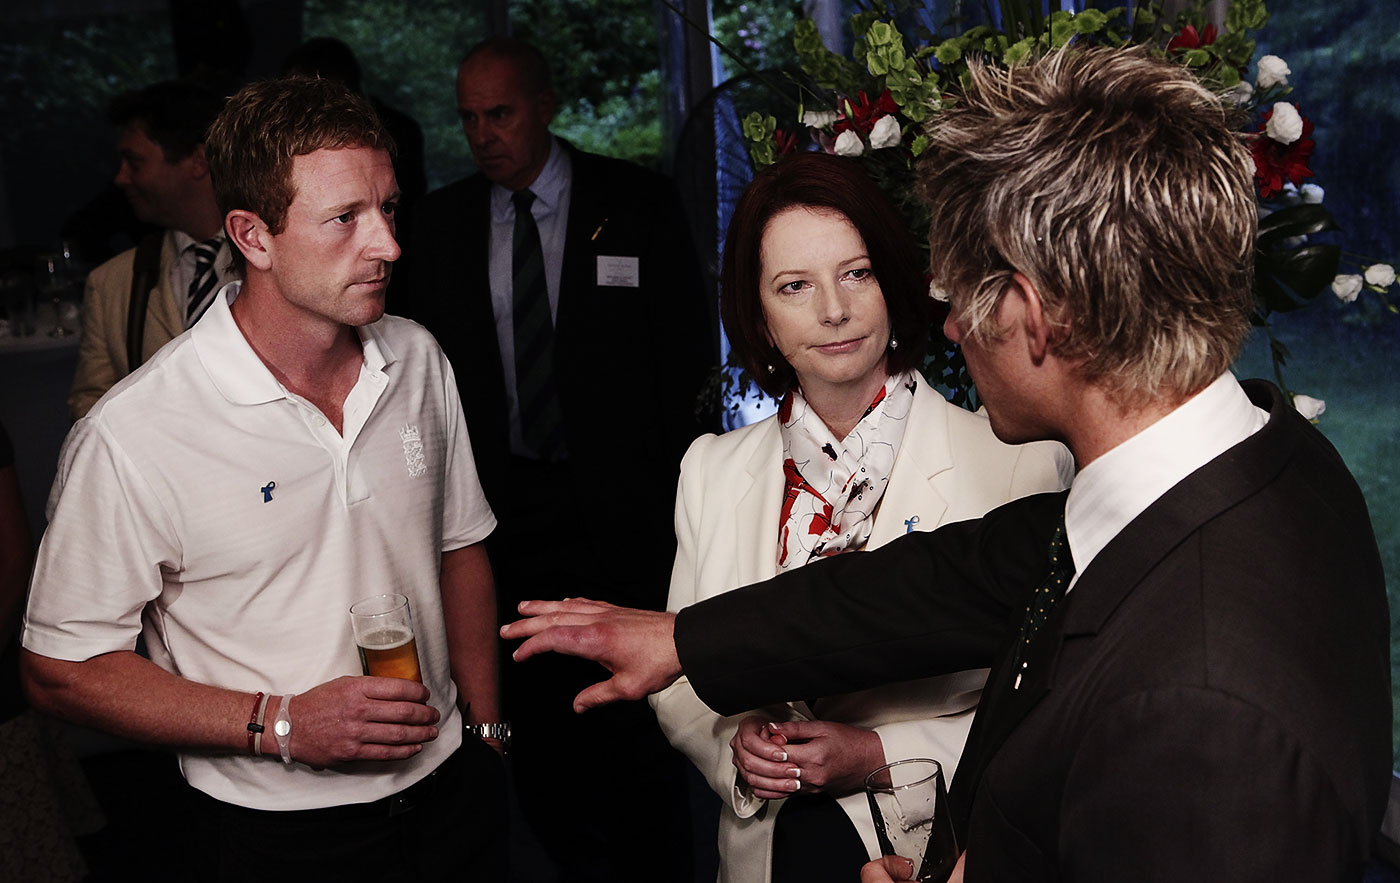 Paine talks to PM Julia Gillard and Paul Collingwood in January 2011, the day before he captained the Prime Minister's XI against England. (Note swollen finger)